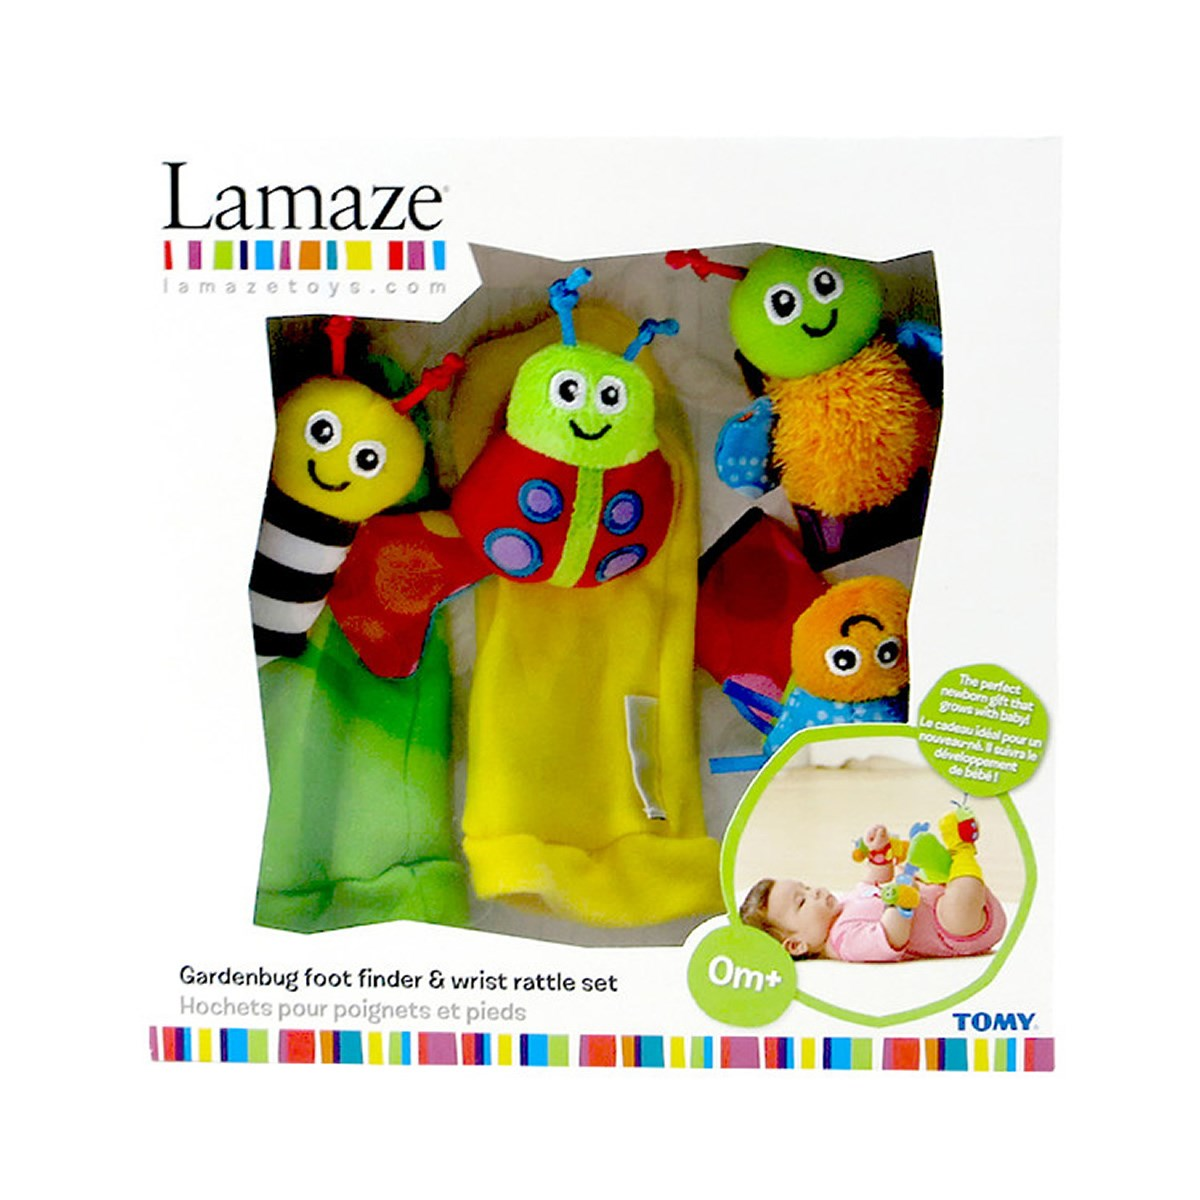 Lamaze Foot Finder & Wrist Rattle Set